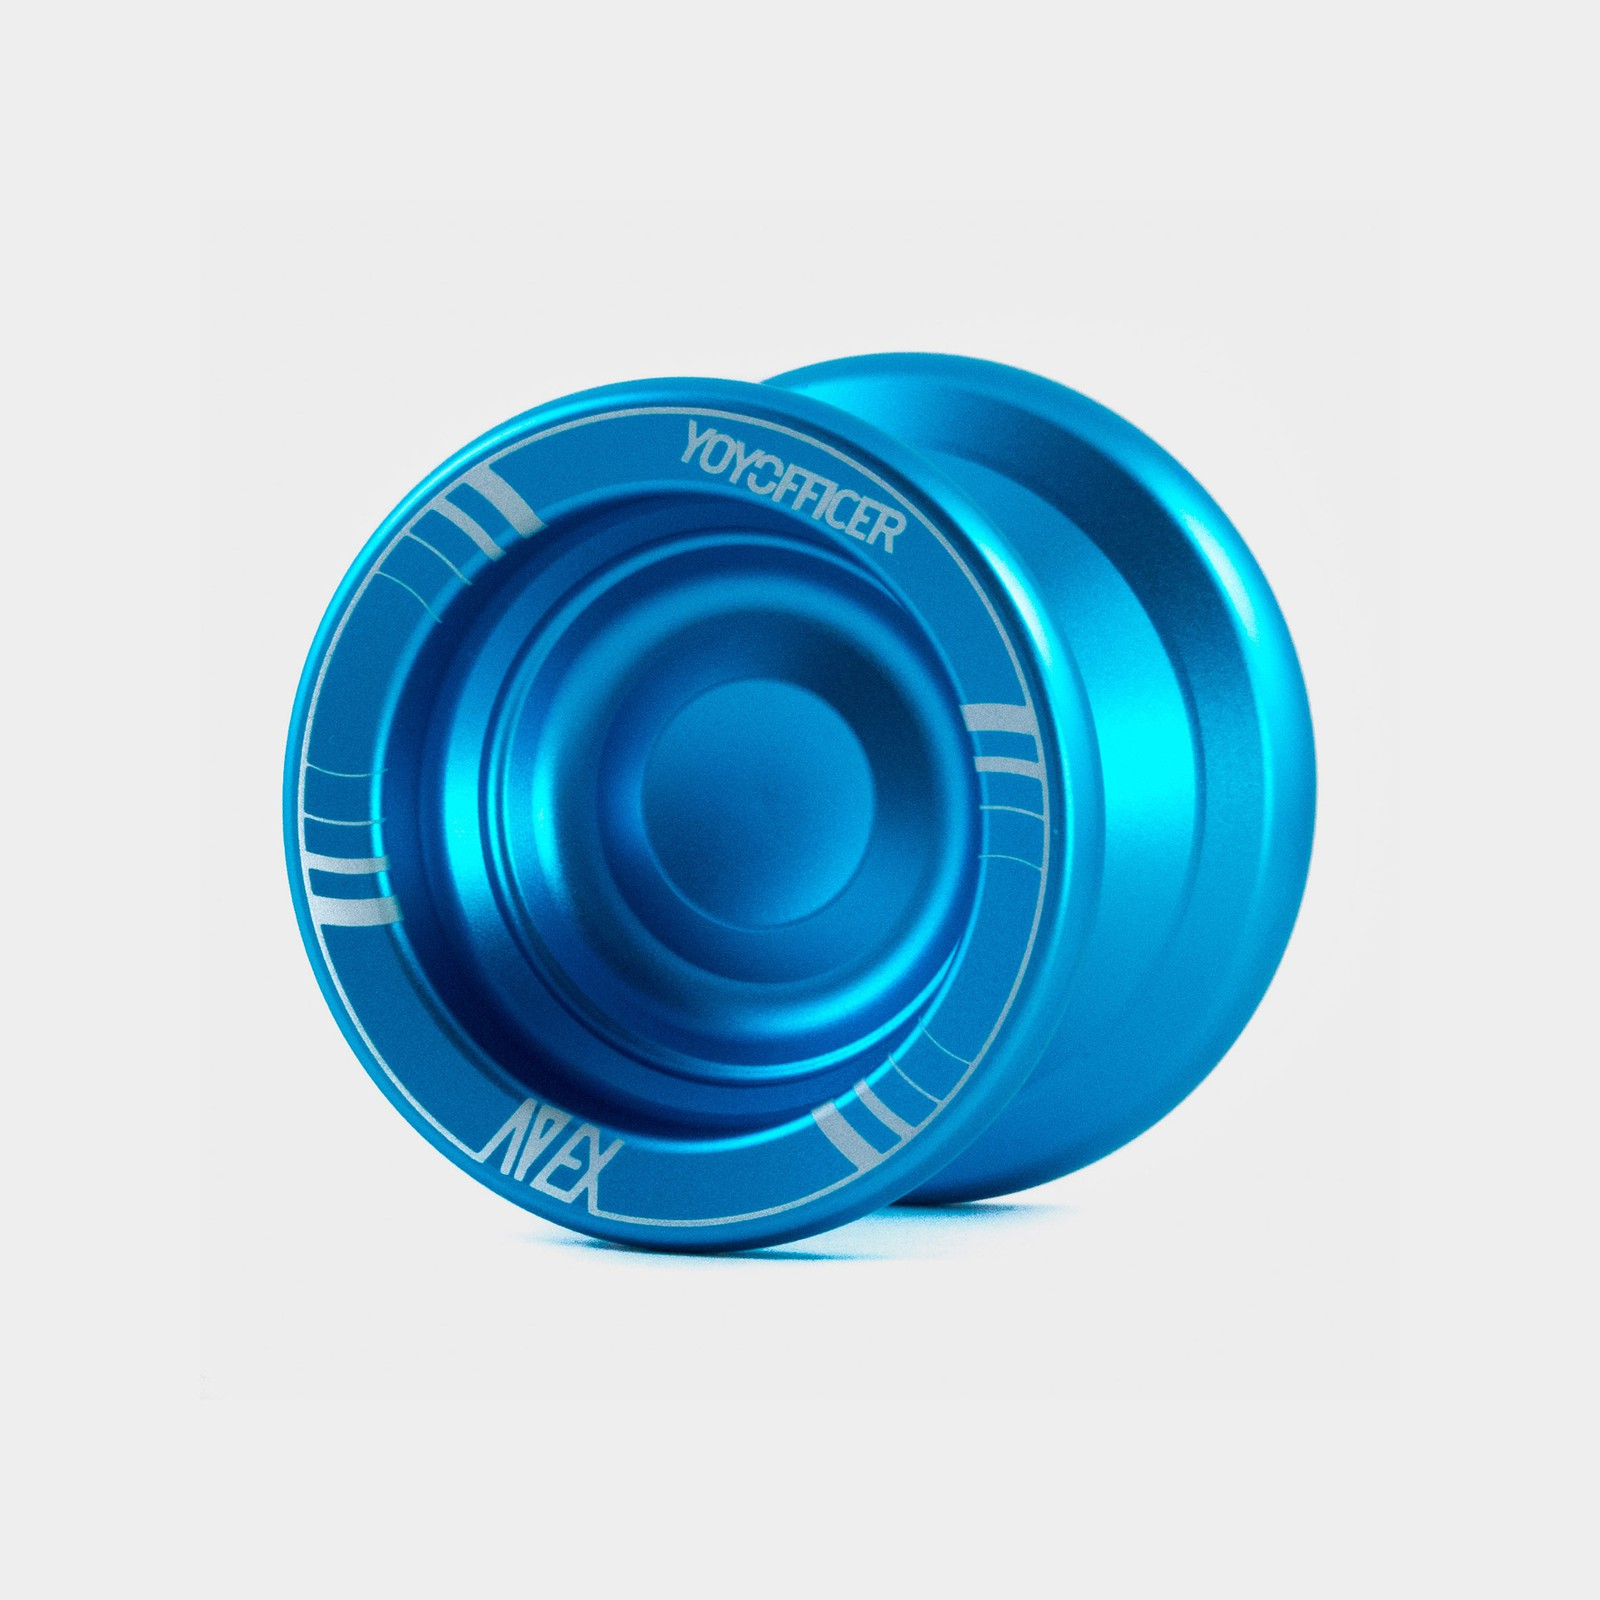 Apex yo-yo in Light Blue by YOYOFFICER